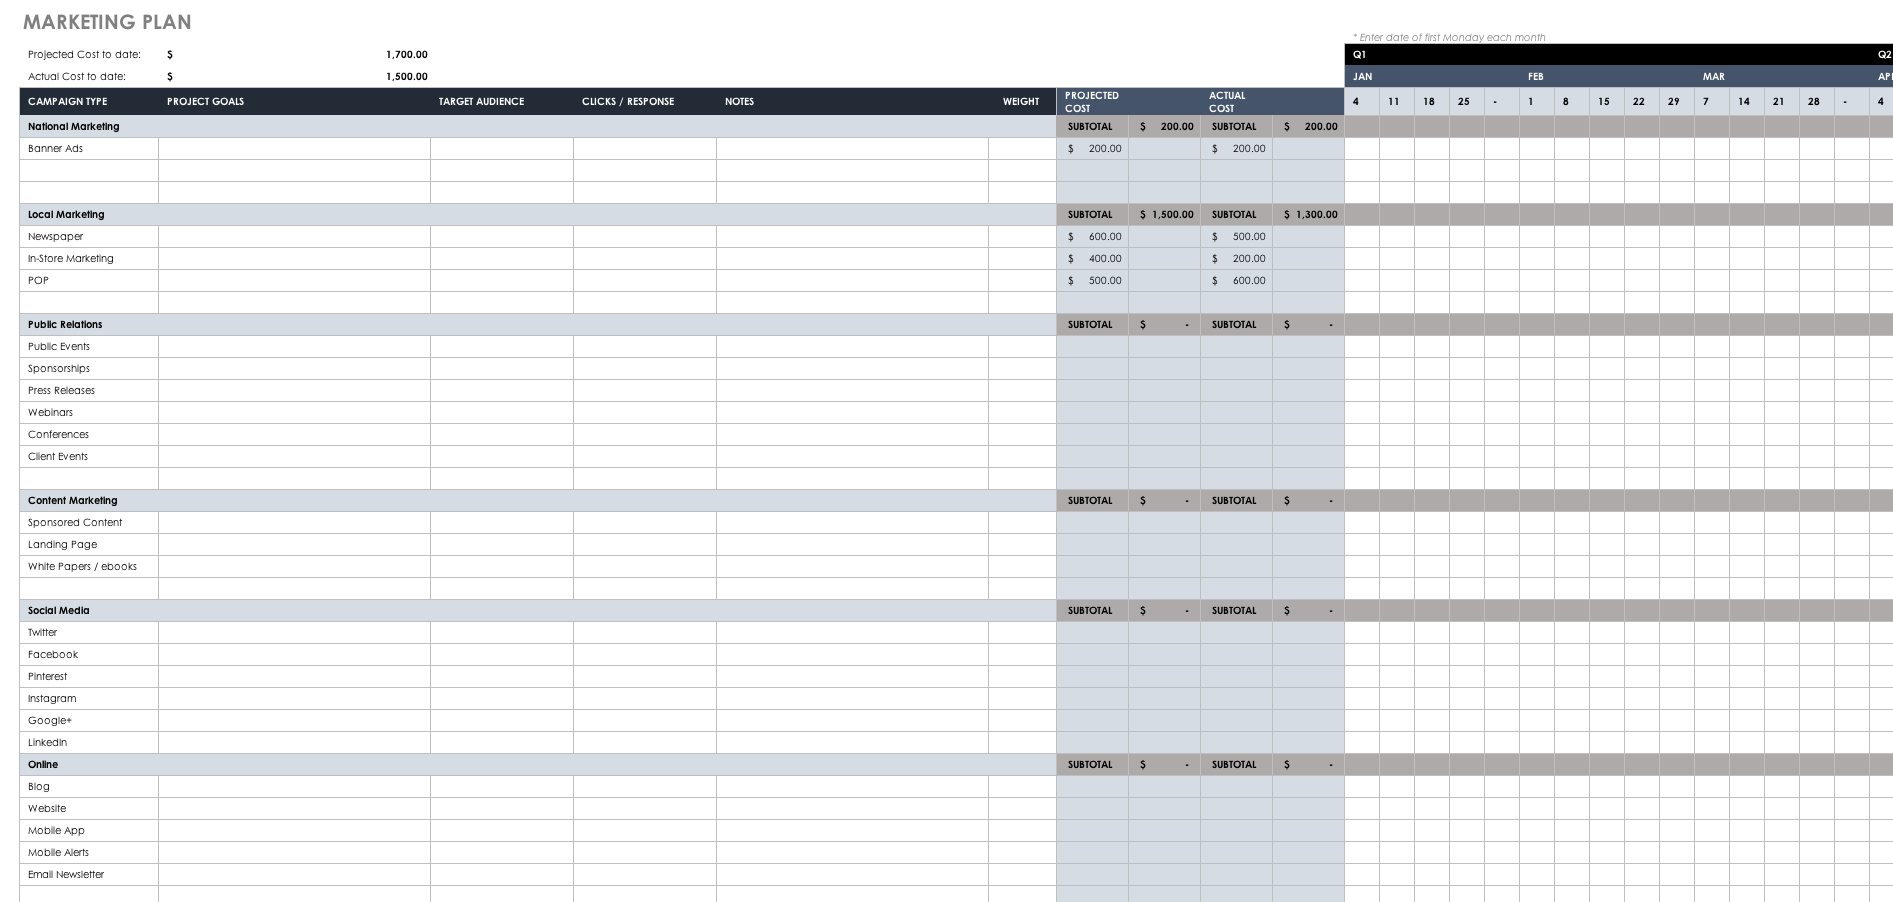 Free Startup Plan Budget  Cost Templates  Smartsheet With Regard To Business Plan Excel Template Free Download